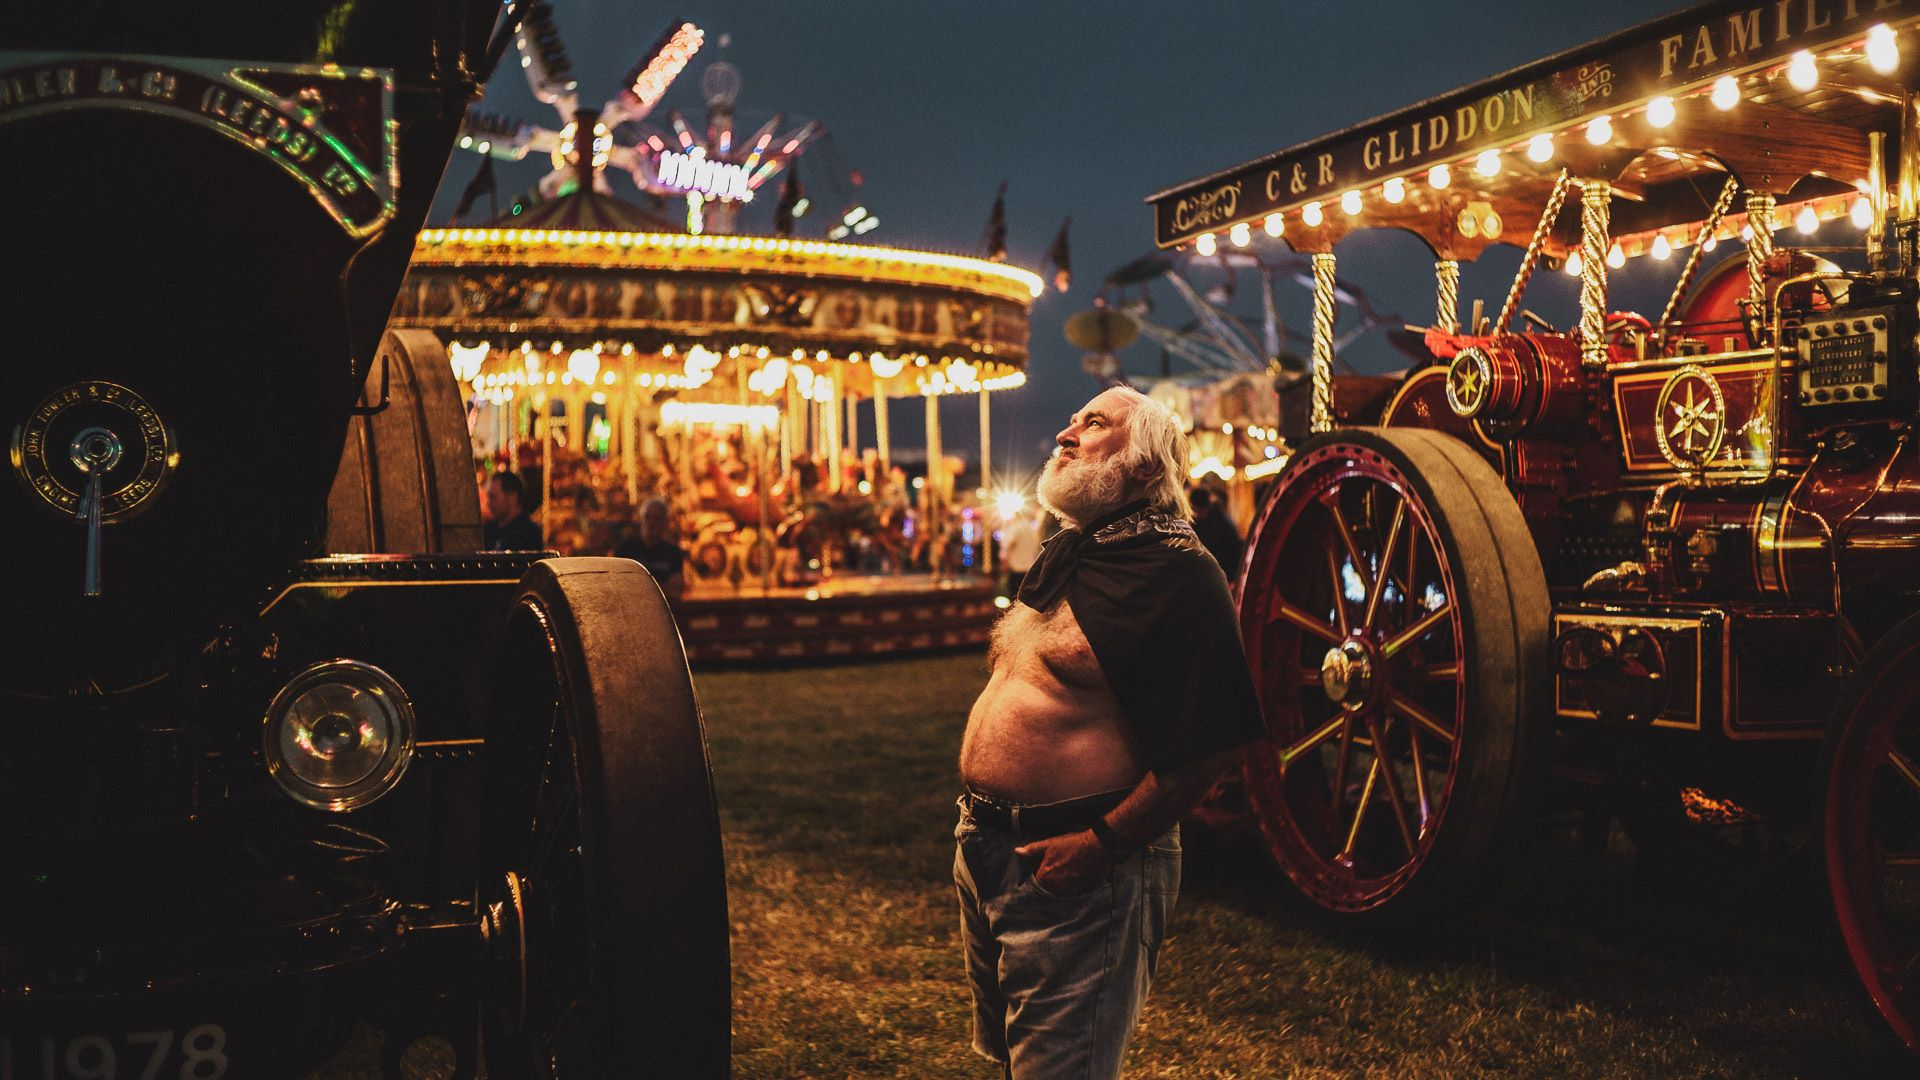 ALL THE FUN OF THE STEAM FAIR